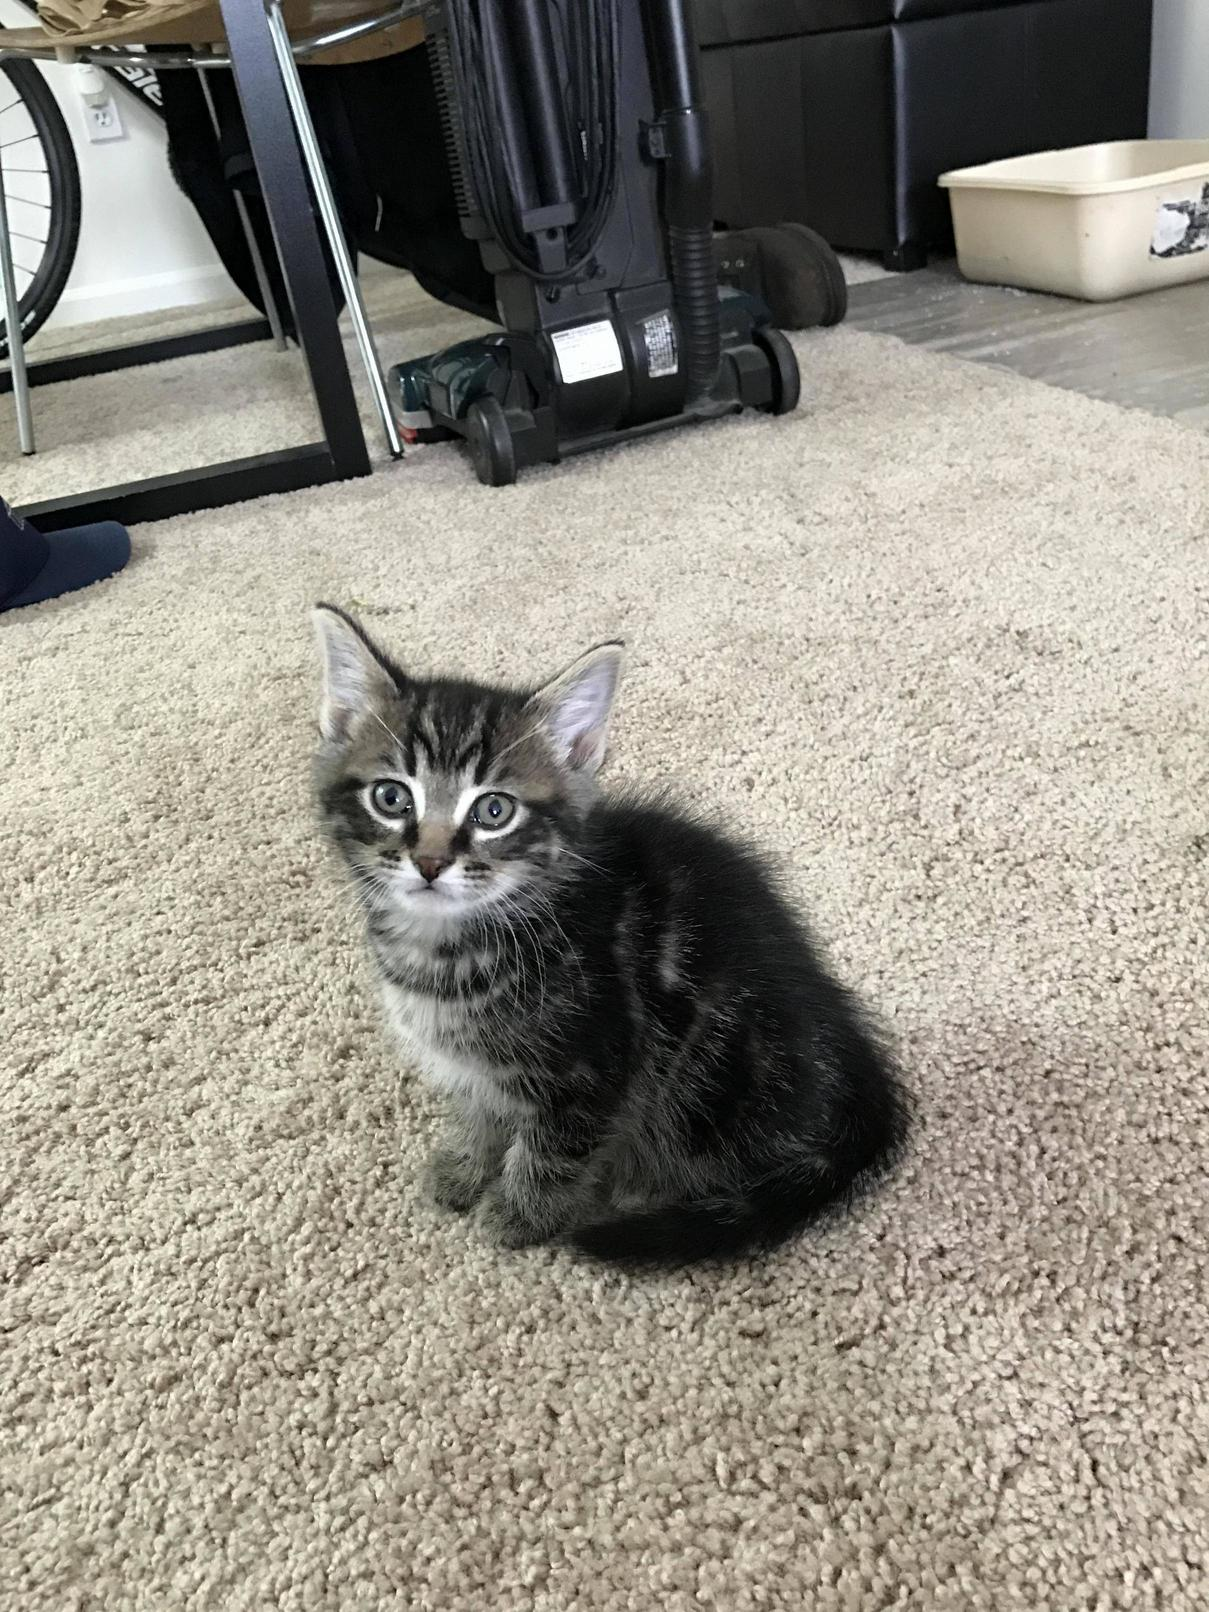 Just got my first cat